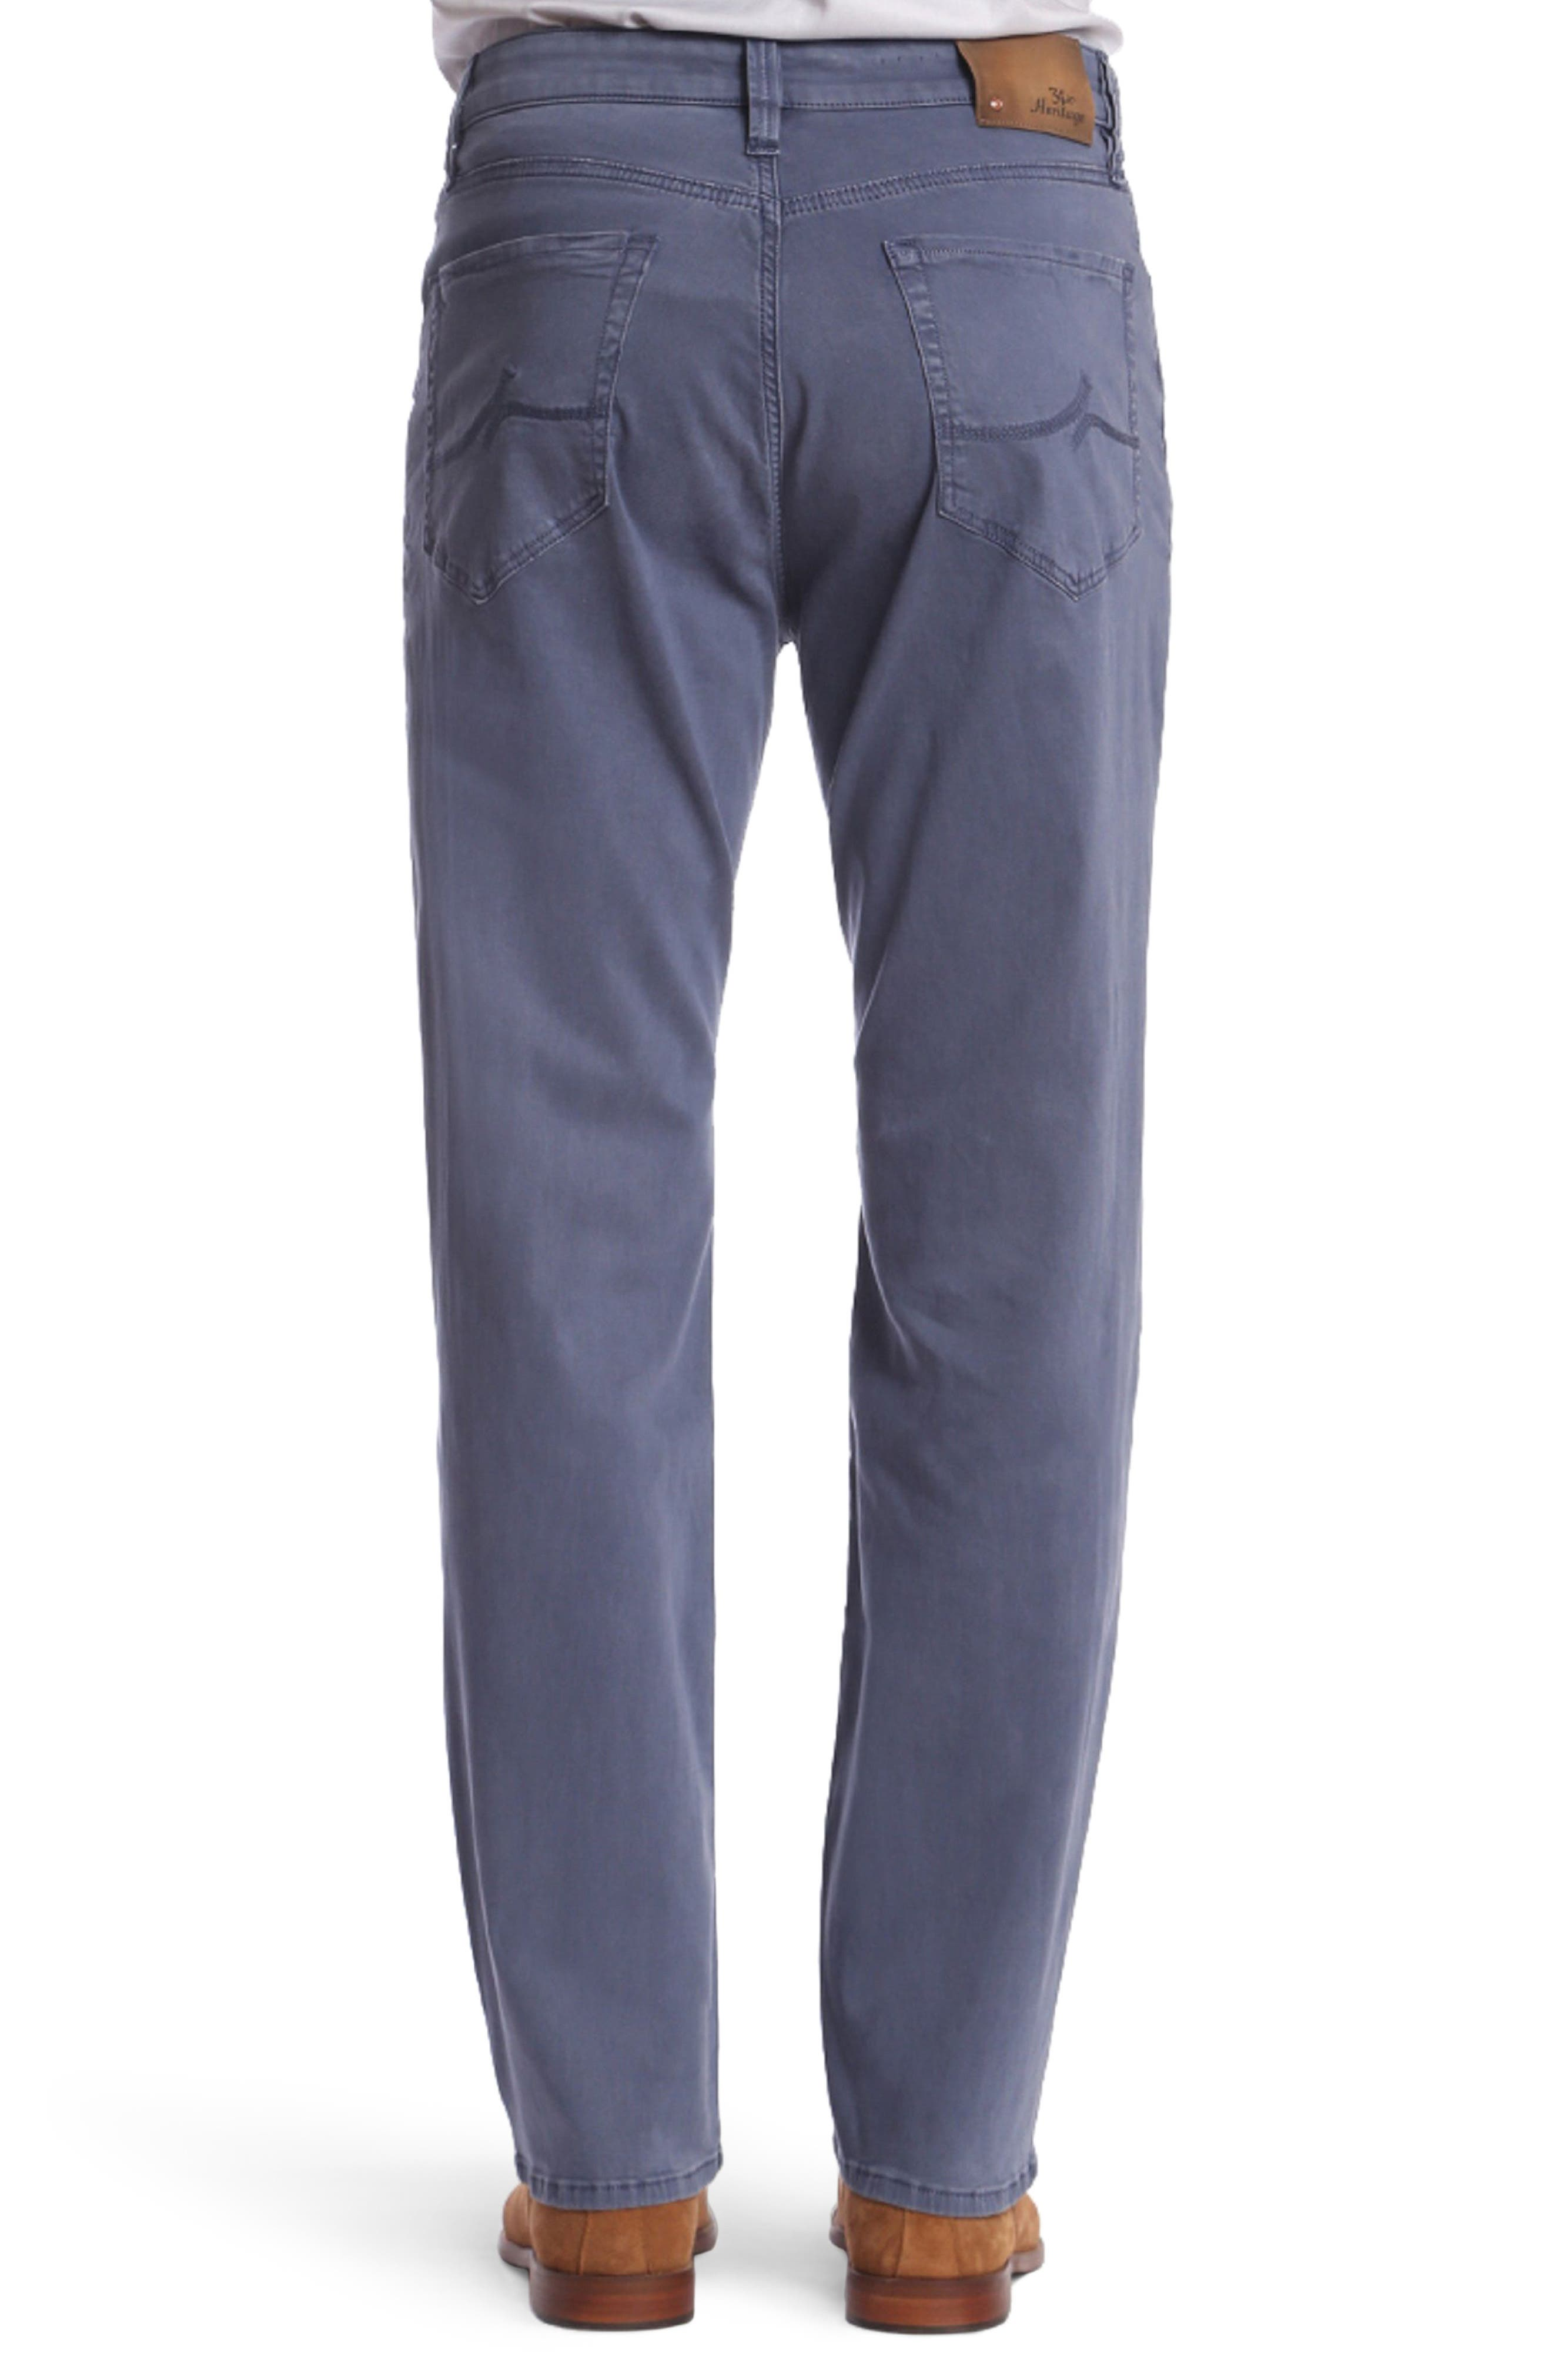 Charisma Relaxed Fit Jeans,                             Alternate thumbnail 2, color,                             450